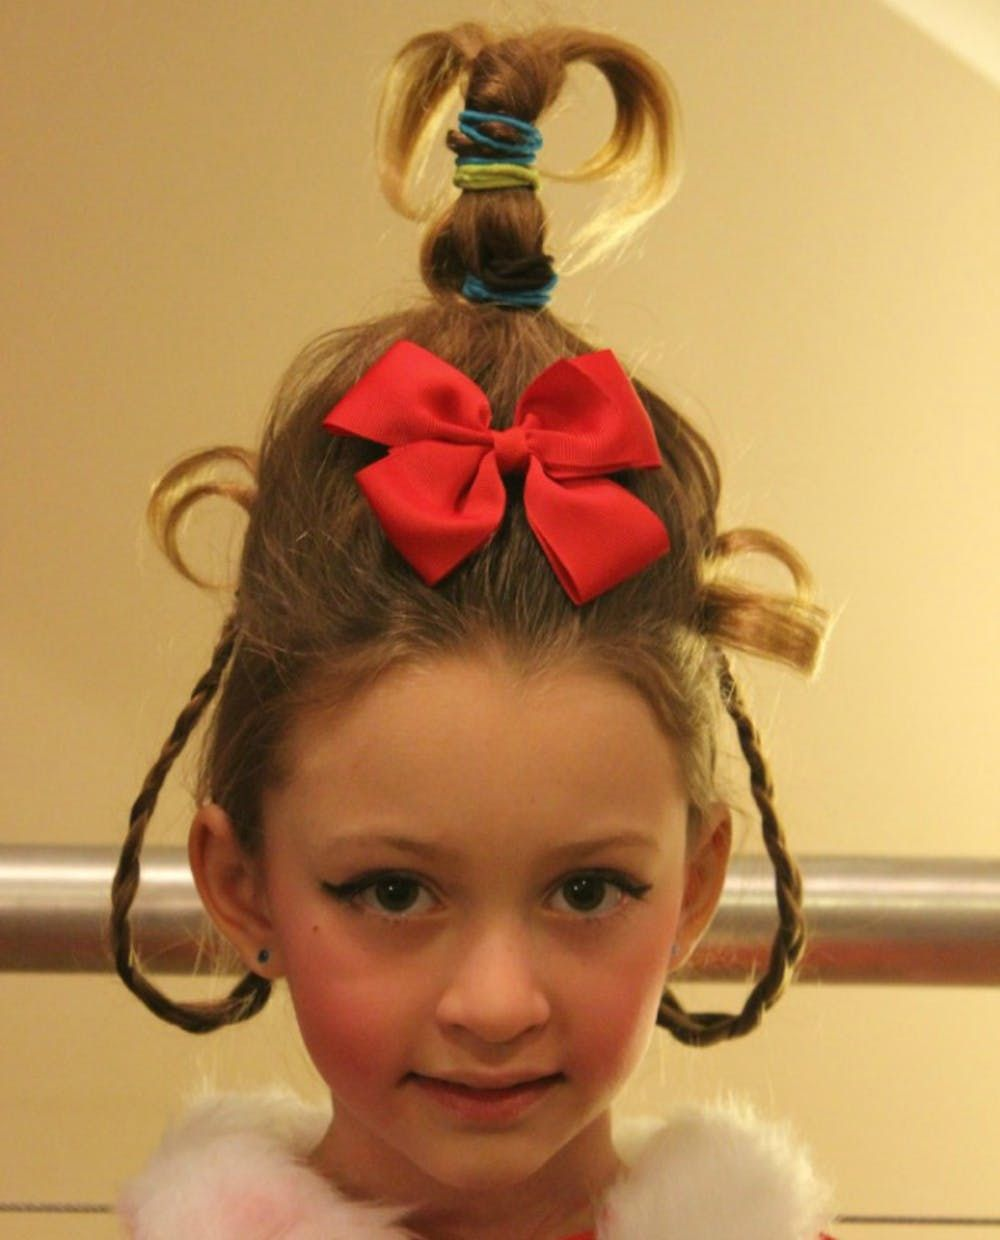 17 Halloween Hairstyles to Complete Your Killer Costume